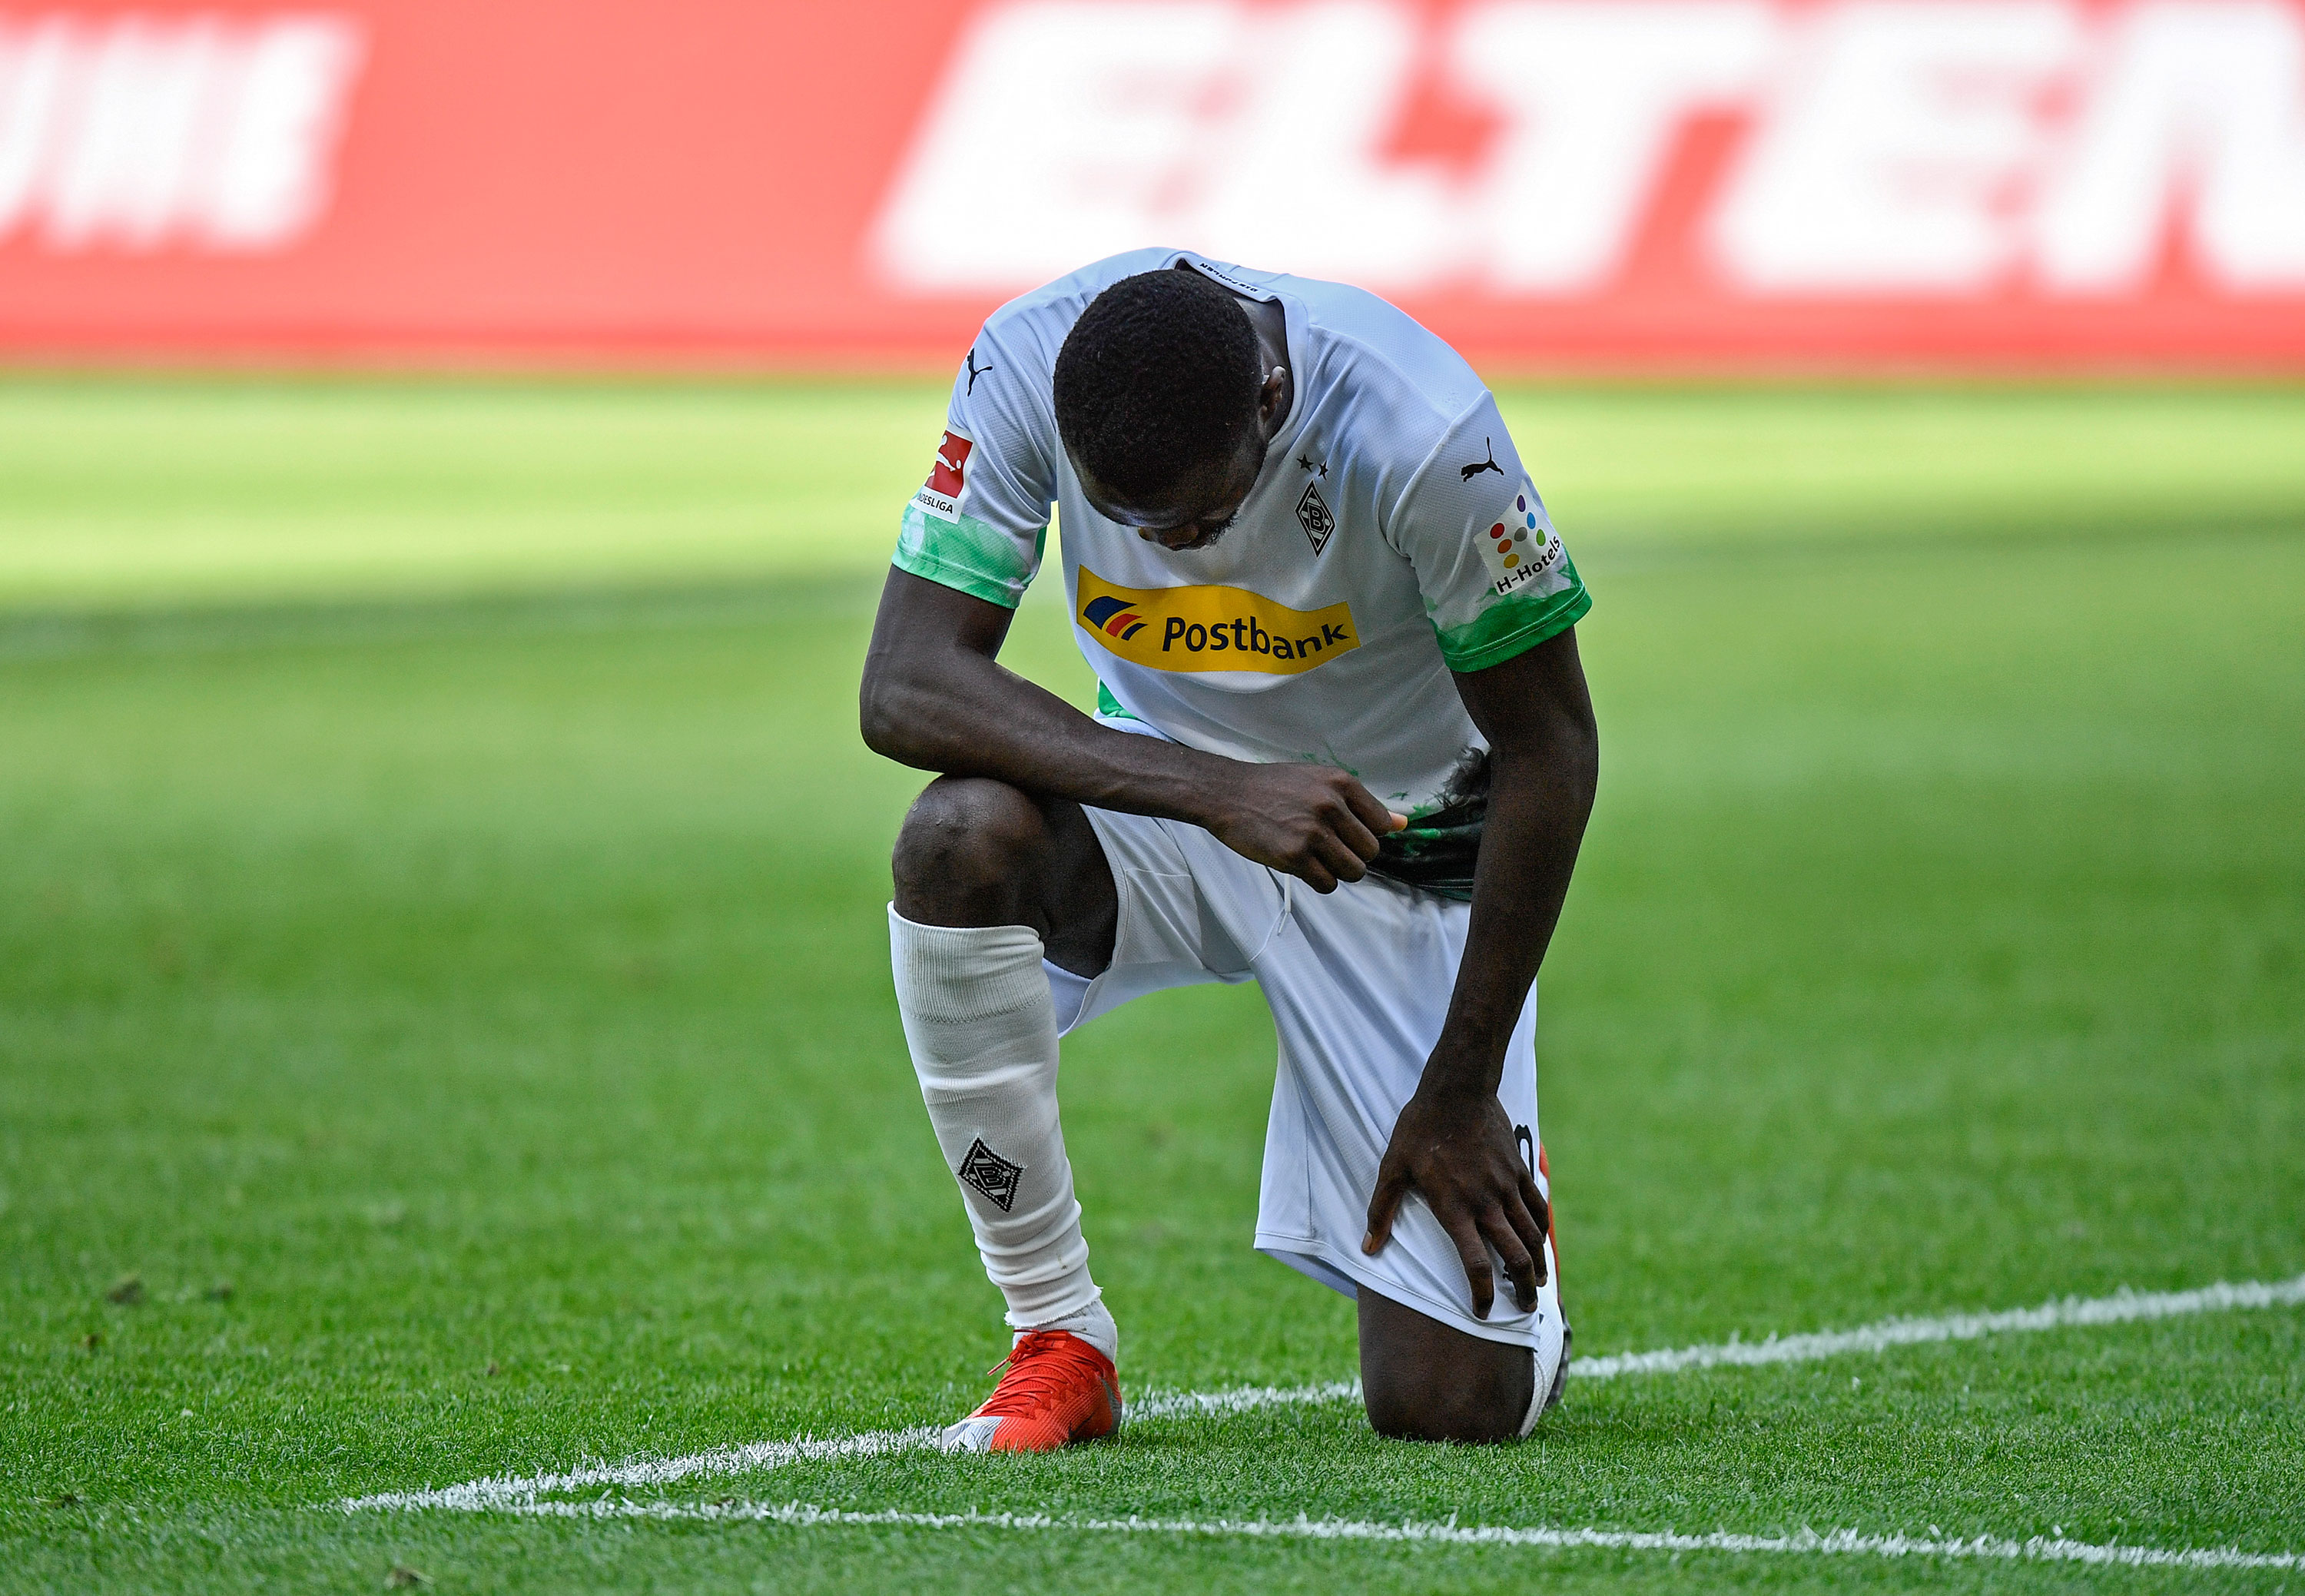 Borussia Möchengladbach forward Marcus Thuram takes a knee after scoring in the match between Möchengladbach and Union Berlin in Mönchengladbach, Germany, on May 31.